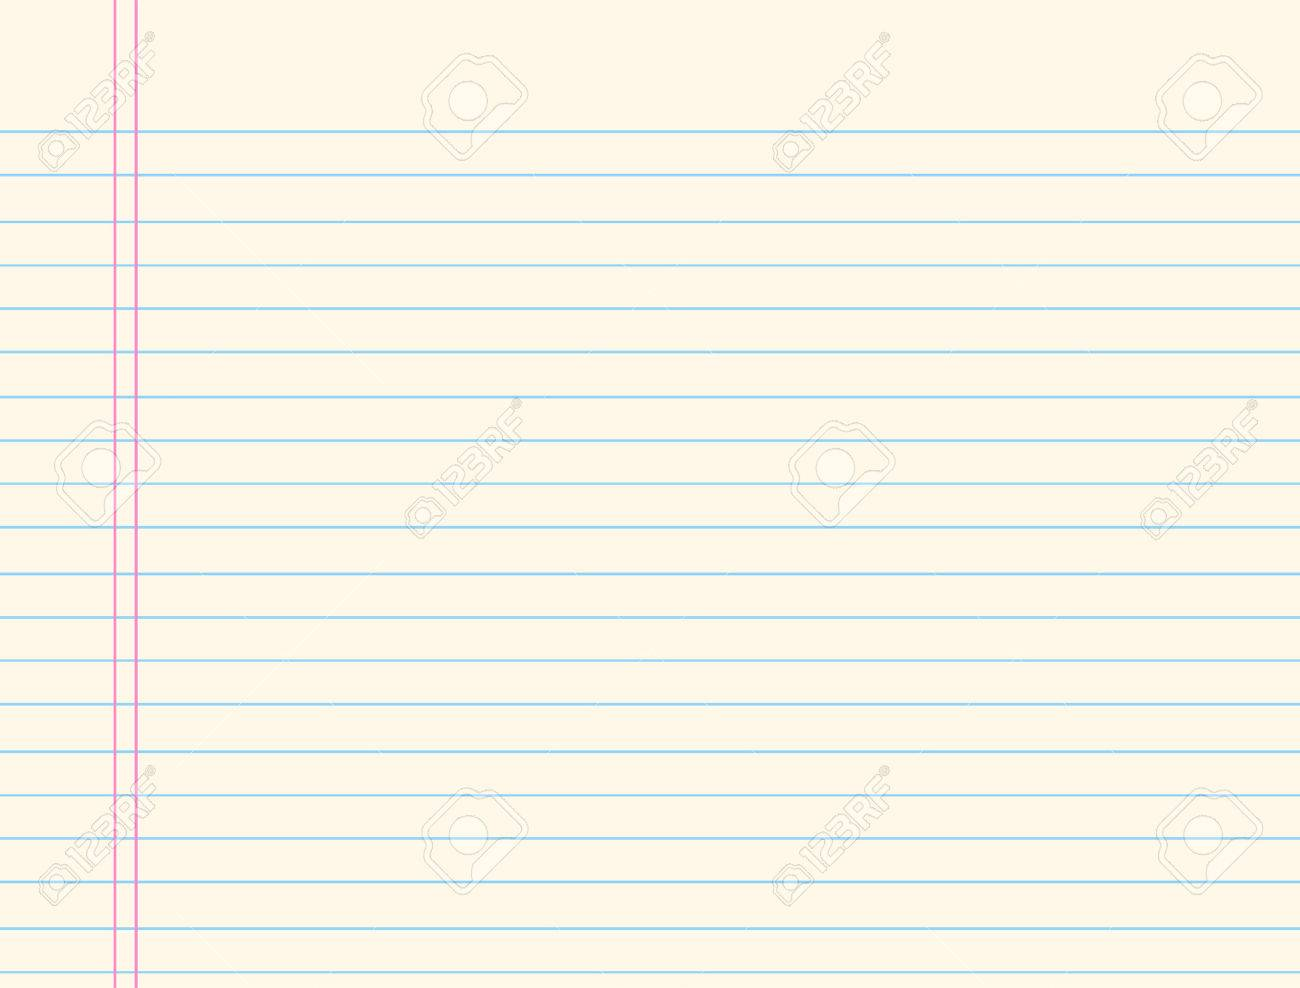 notebook paper background royalty free cliparts, vectors, and stock